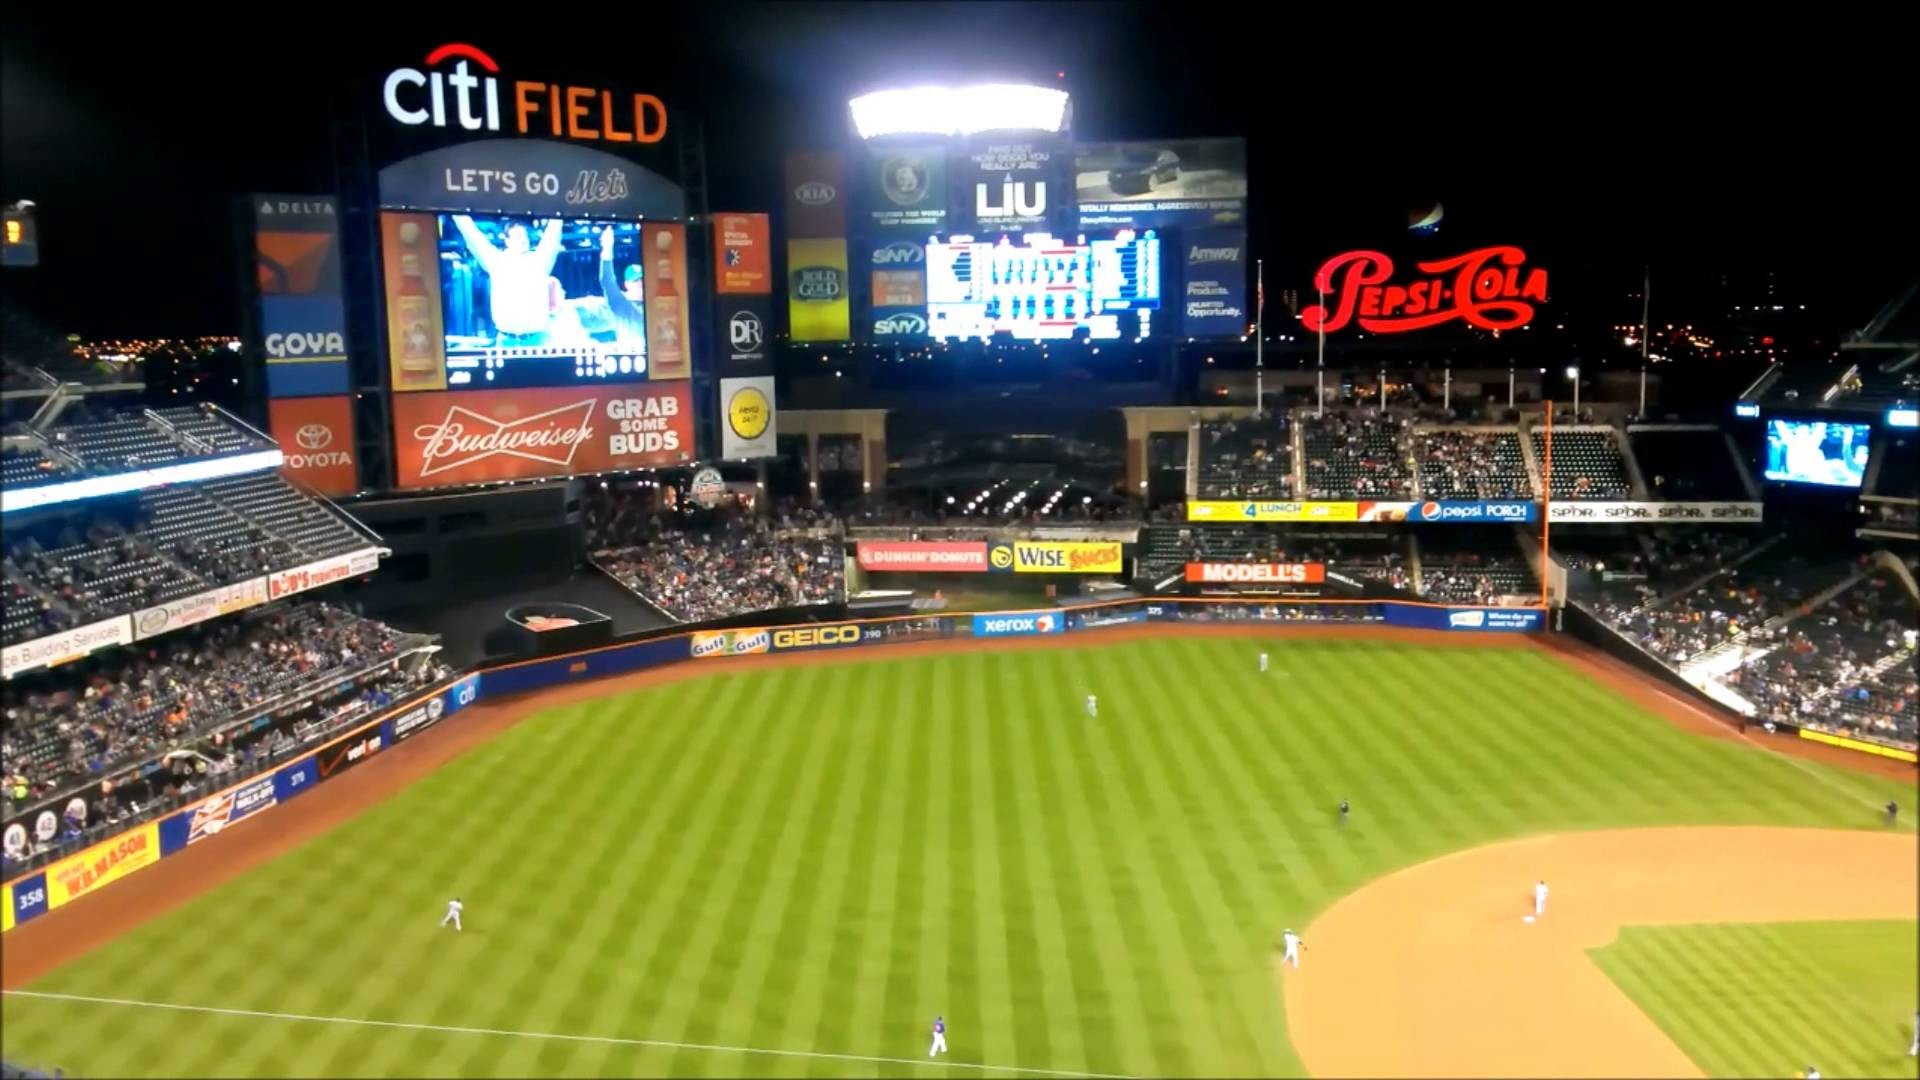 New york mets wallpaper 67 images 2560x1600 new york full hd new york category wallpaper altavistaventures Image collections